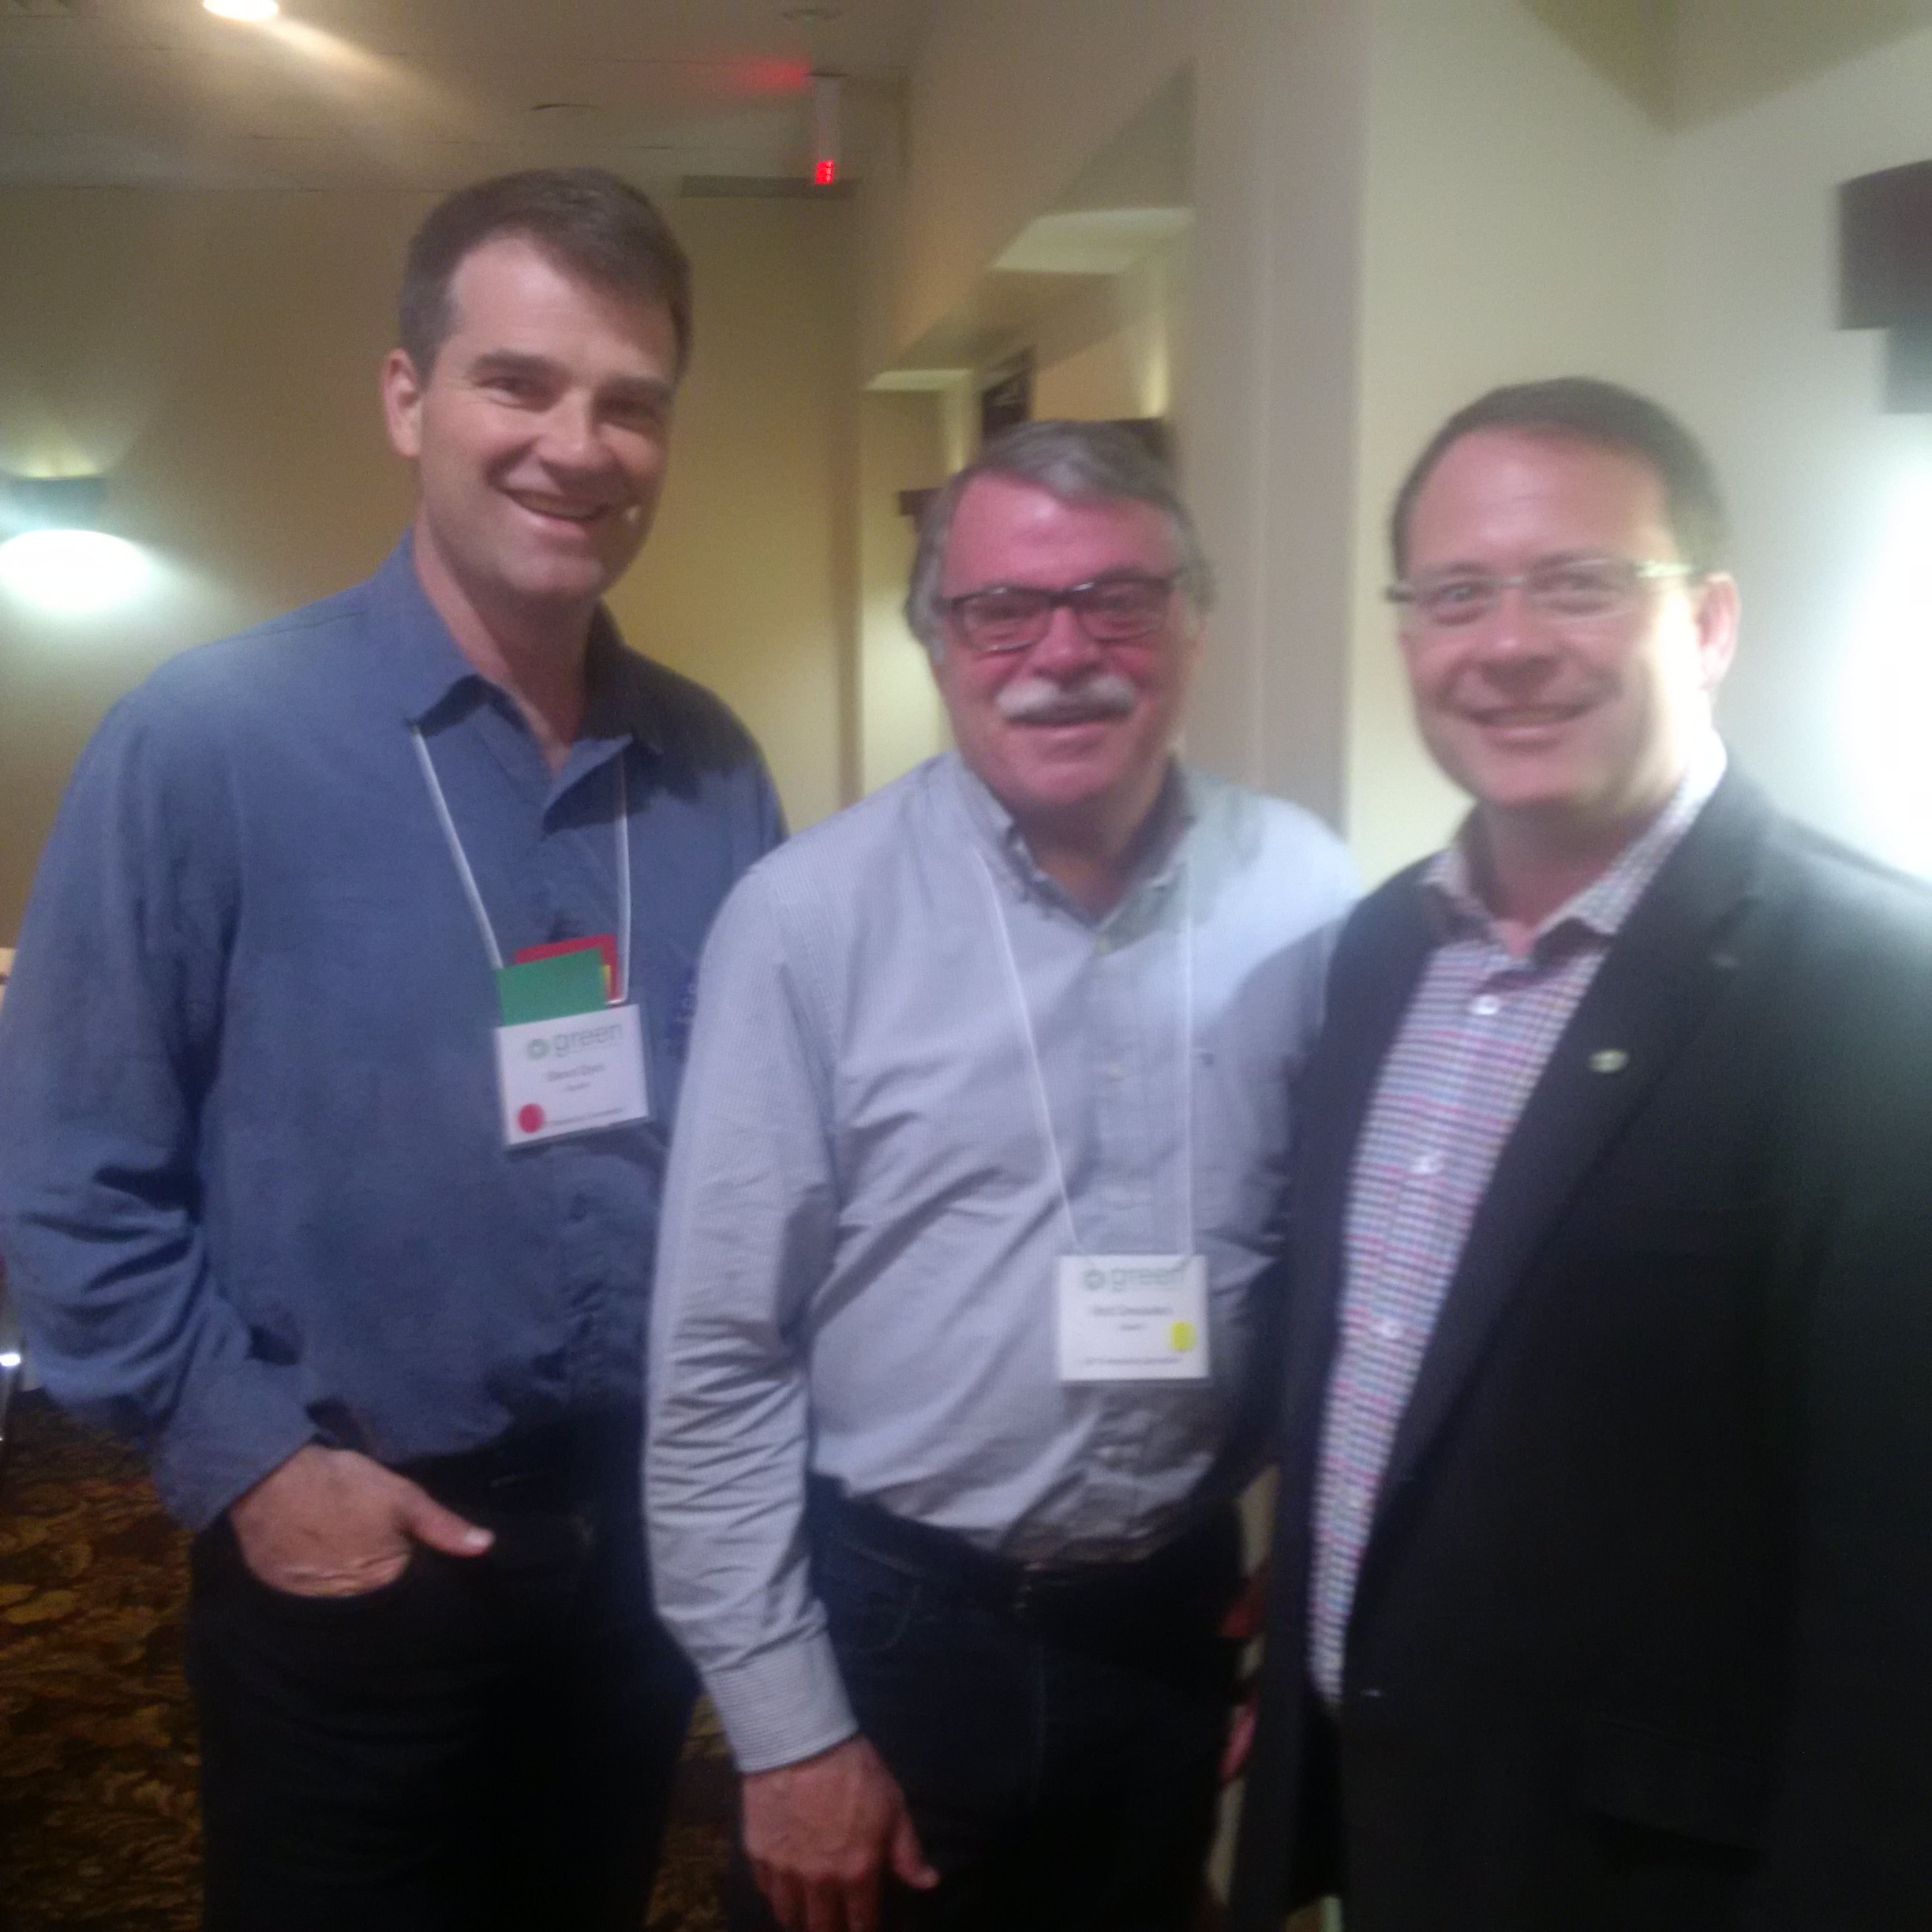 With Steve Dyck and Mike Schreiner, GPO Leader